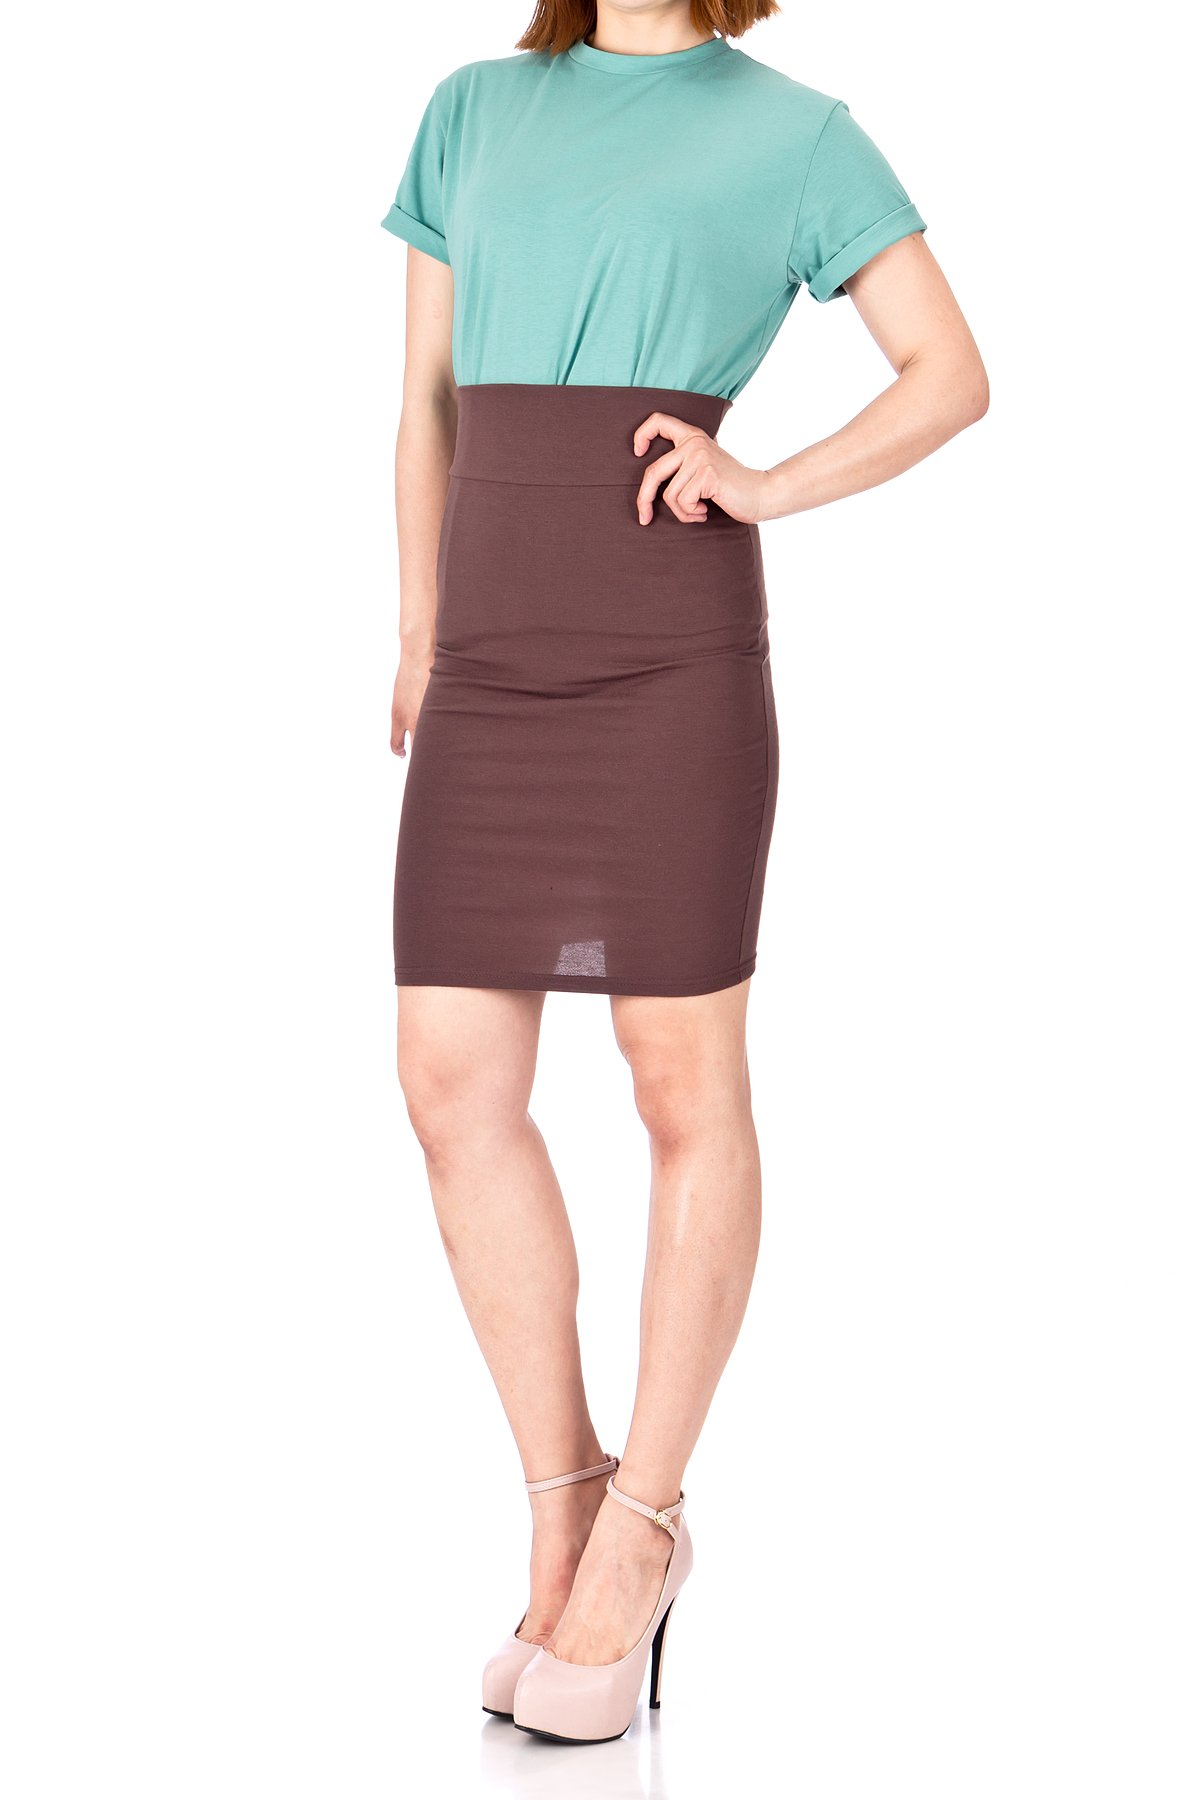 Every Occasion Stretch Pull on Wide High Waist Bodycon Pencil Knee Length Midi Skirt Brown 02 1